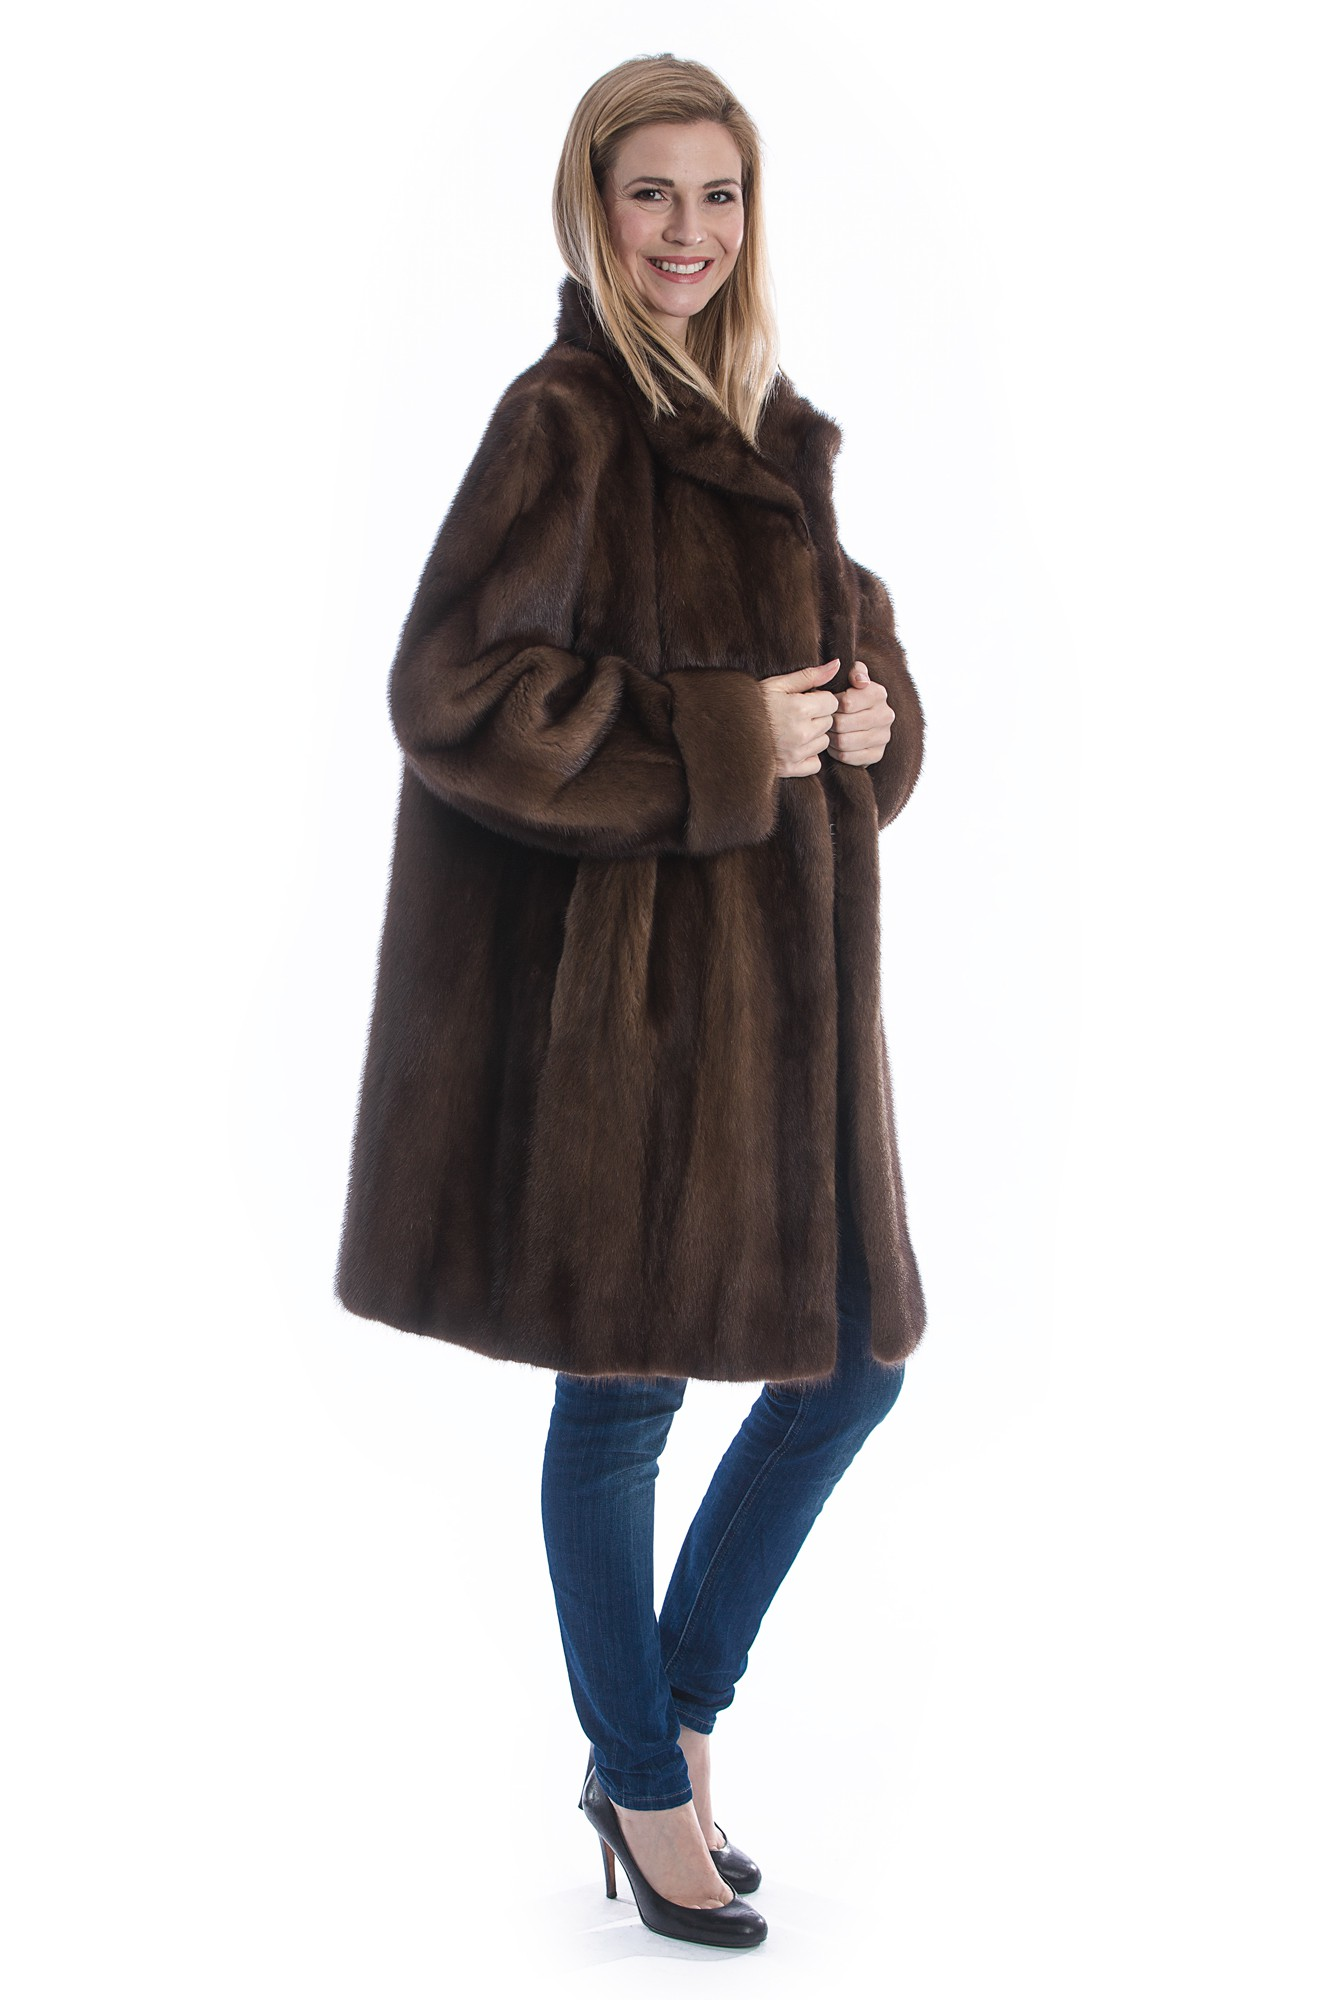 Fur Coats & Jackets. Fox Fur, coyote fur trim, rex rabbit, knit fascinatingnewsvv.ml coats just aren't what they used to be, and here at fascinatingnewsvv.ml, we're making the most of it. We're continuing to expand our selection of fur jackets and fur coats that are versatile enough to wear for casual use or formal enough for special occasions. Whether you're looking for classic mink coats or rabbit fur vests.